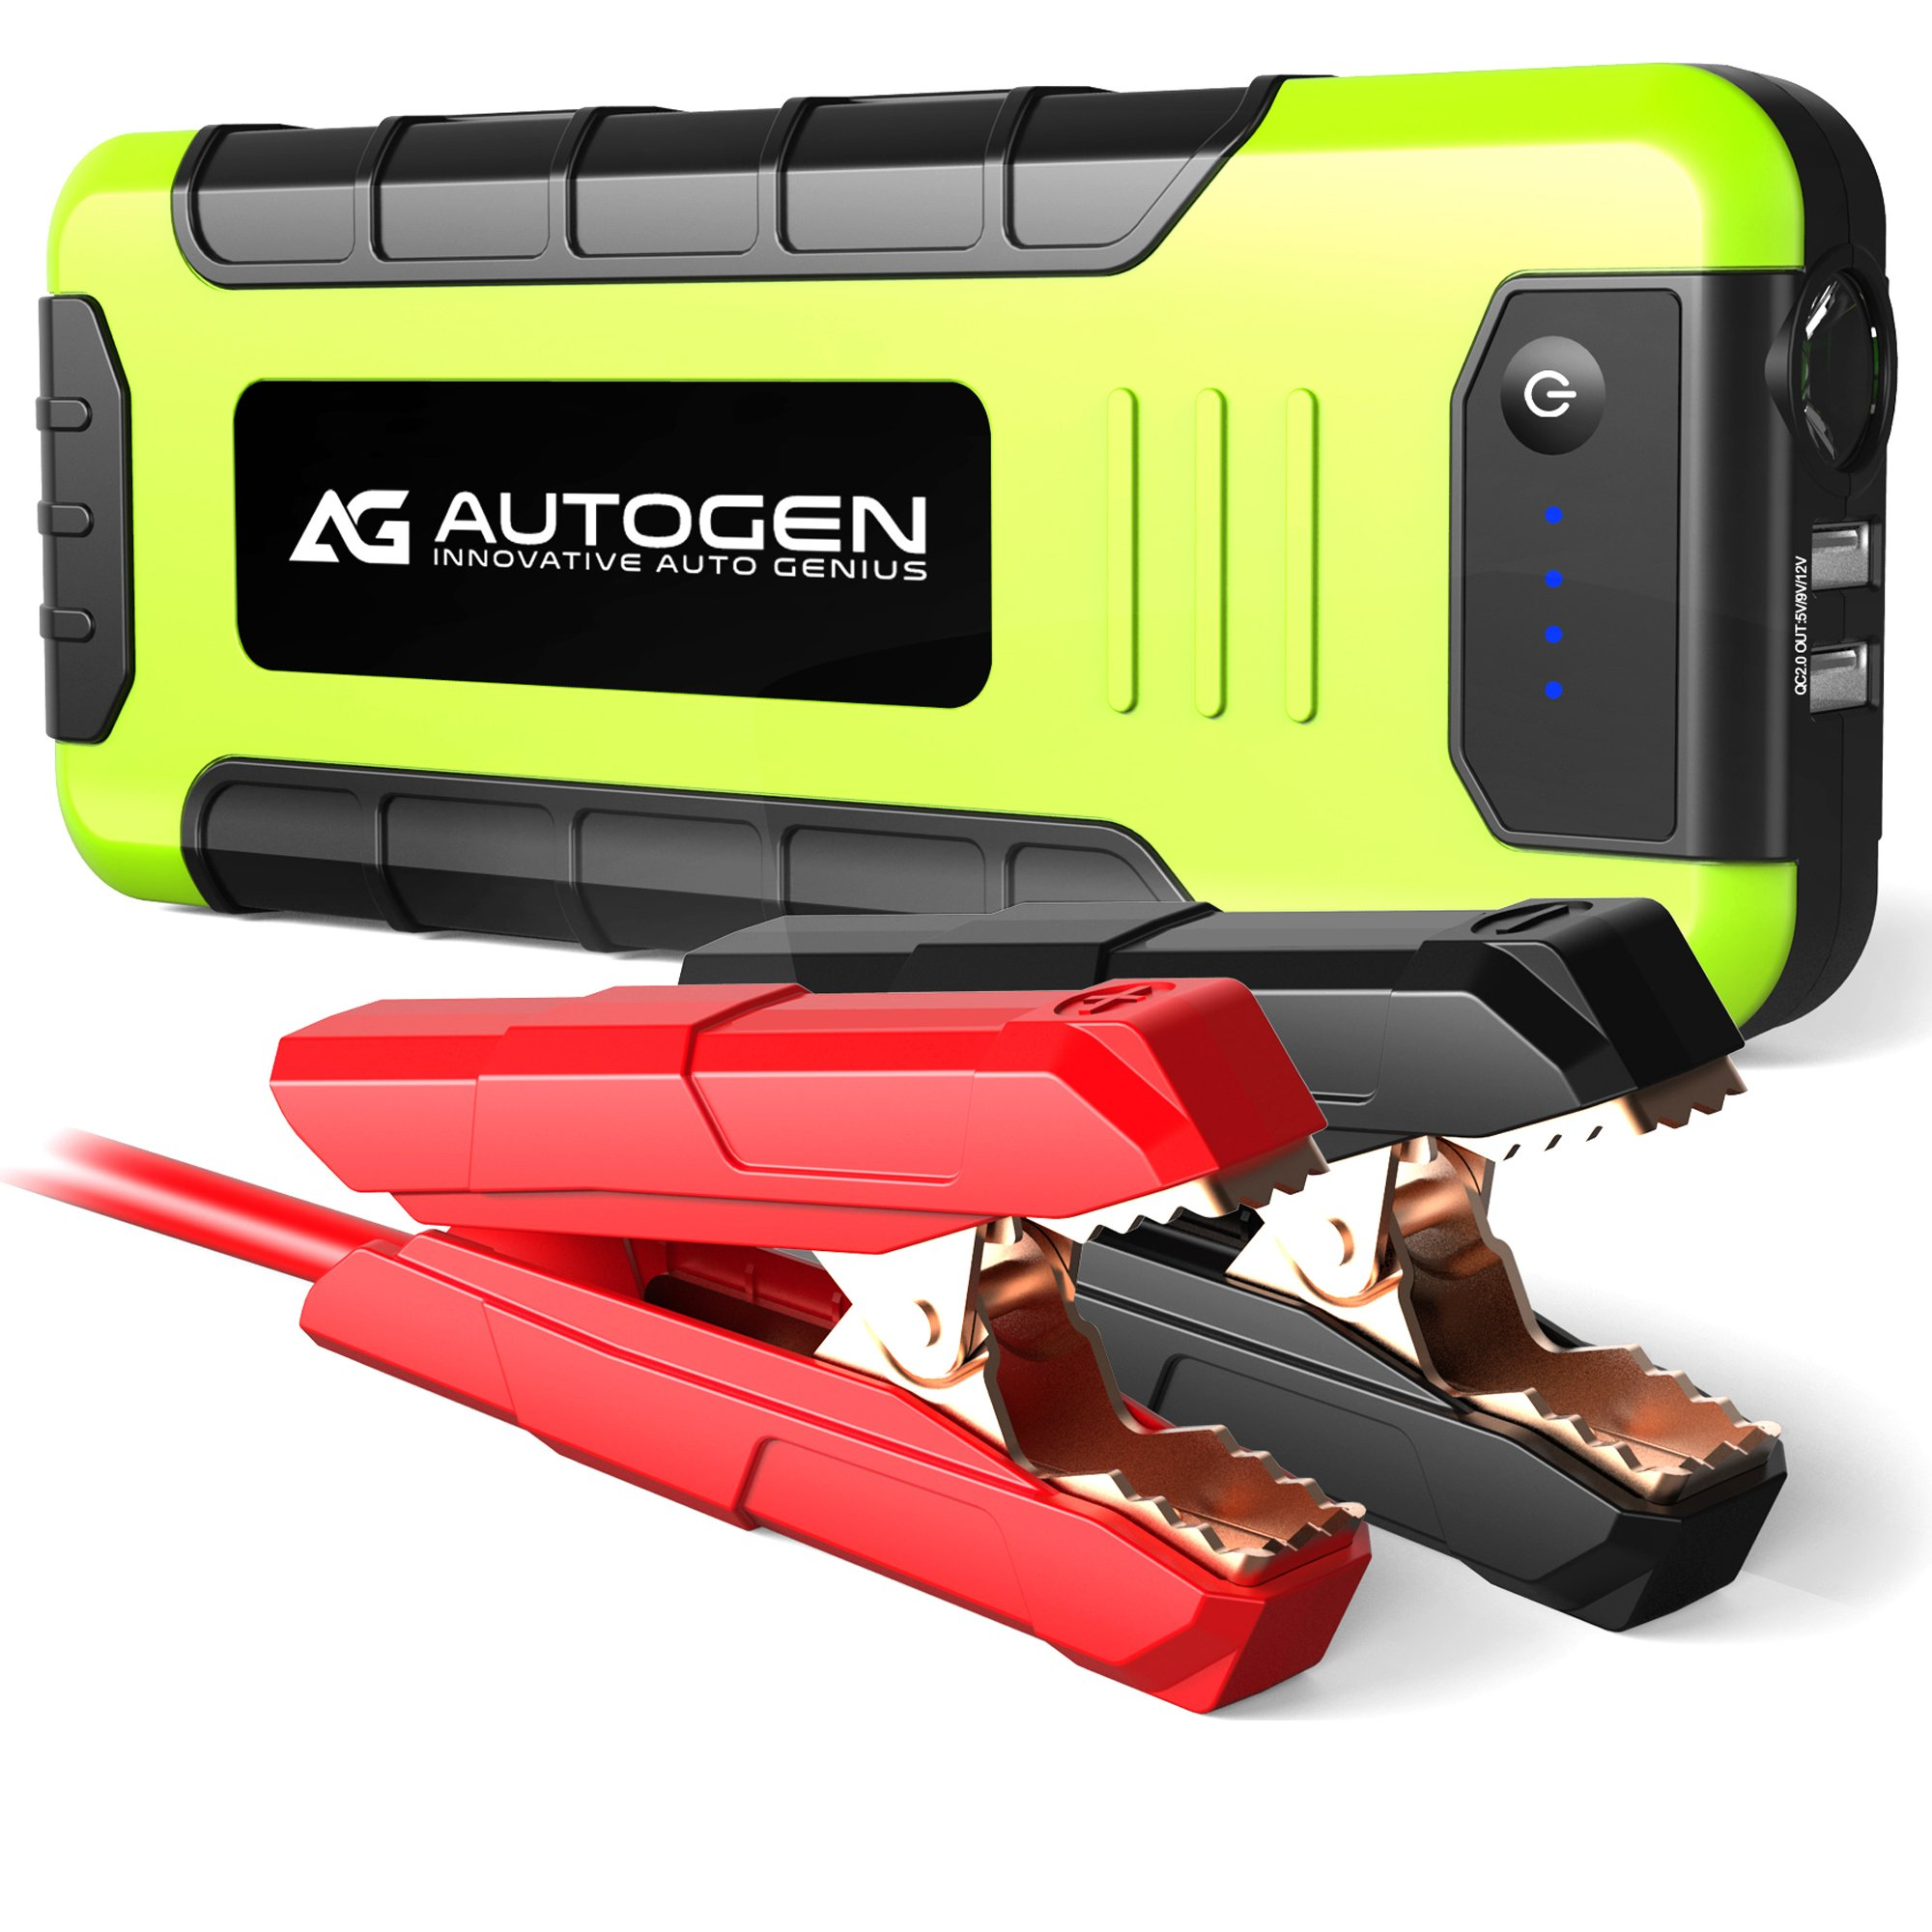 AUTOGEN 2000A Peak Portable Jump Starter for Vehicles (up to 8.0L Gas or 6.5L Diesel) & Quick Charge 3.0 Power Charger, with Mistake-Proof Intelligent Clamps for Cars Boats RVs & Mowers by AUTOGEN (Image #1)